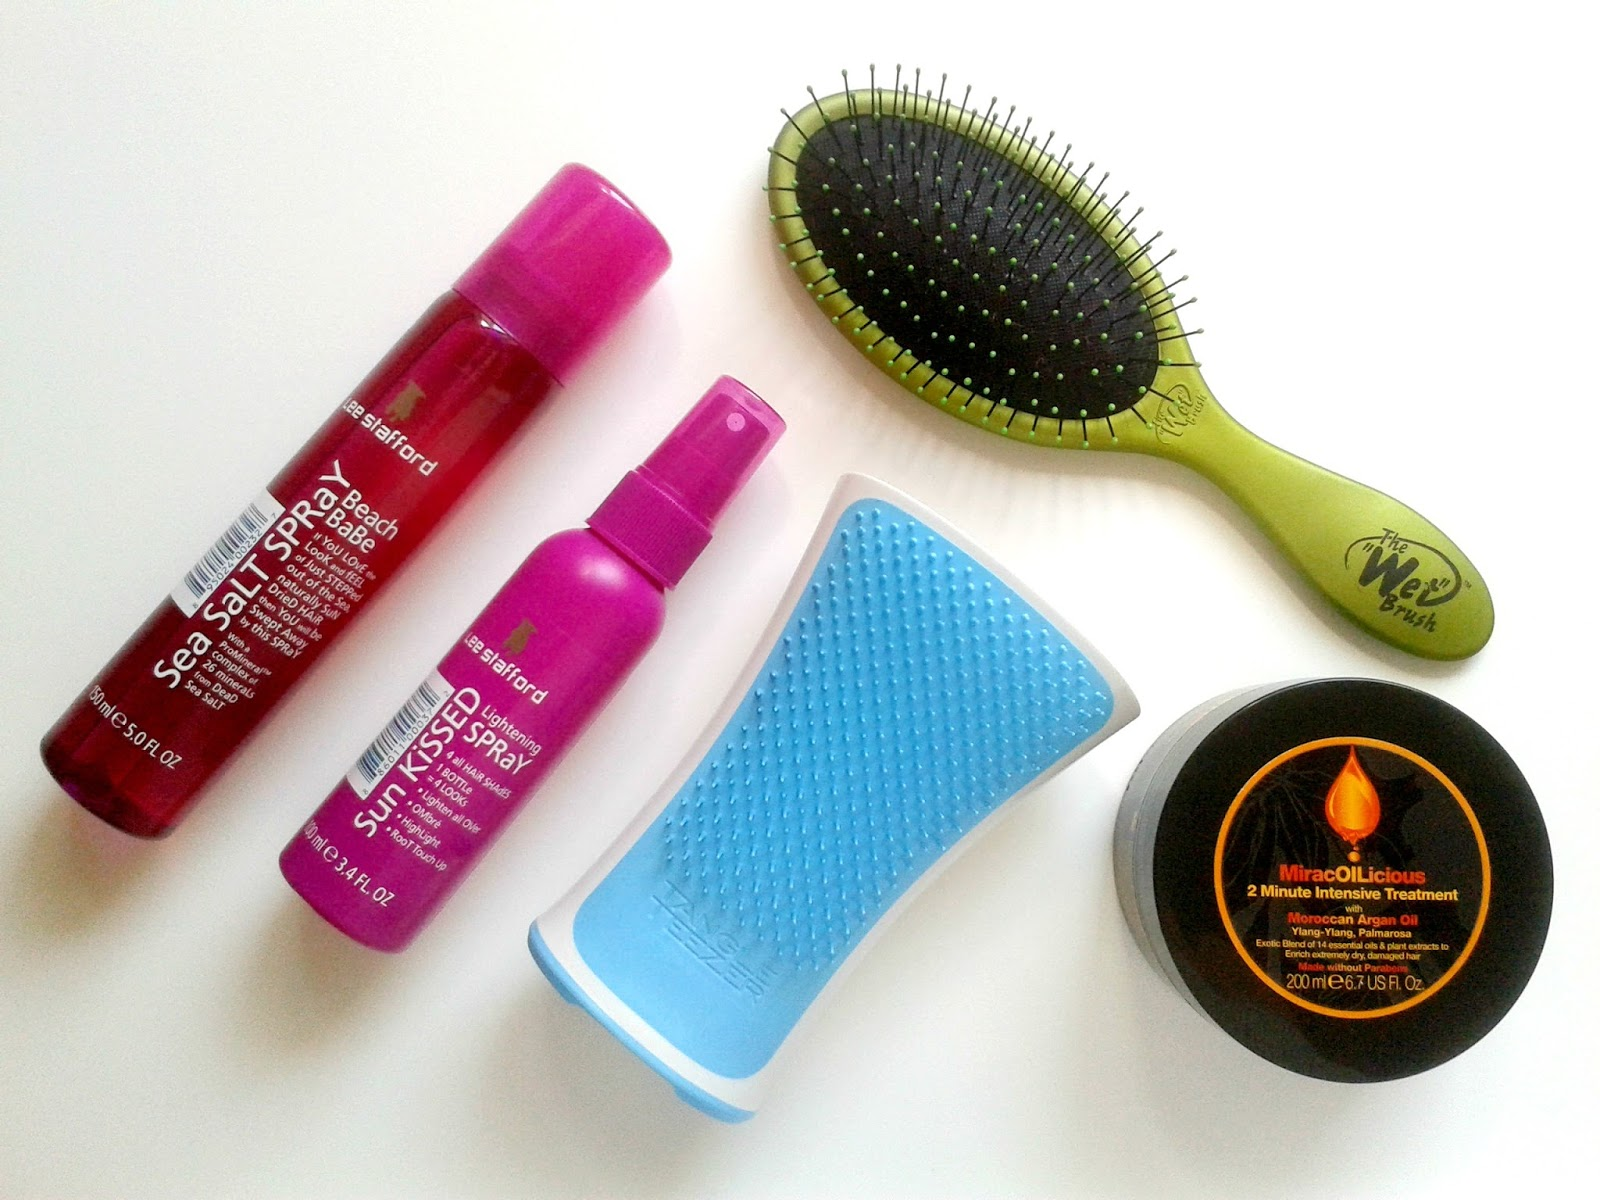 Ellis Tuesday's Summer Sun-Days: Hair Beauty Review The Wet Brush Tangle Teezer Aqua Splash Lee Stafford Mark Hill